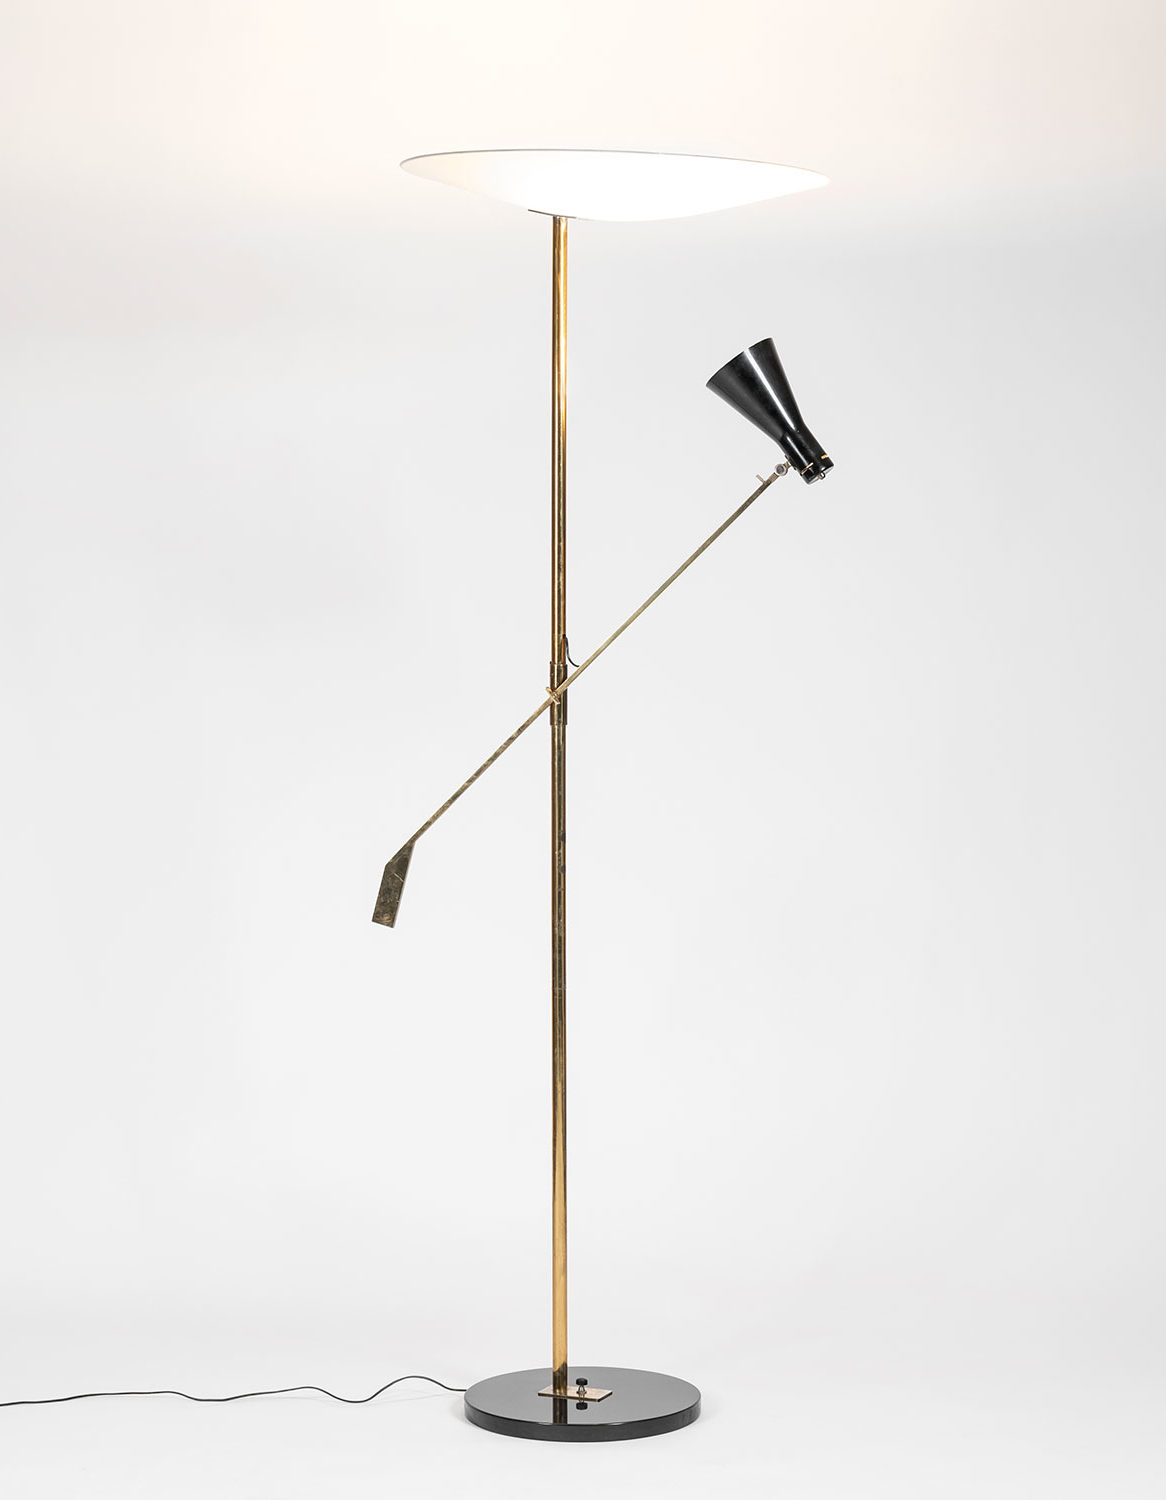 Italian designer Gino Sarfatti floor lamp manufactured by Arteluce at Italian design furniture gallery Casati Gallery